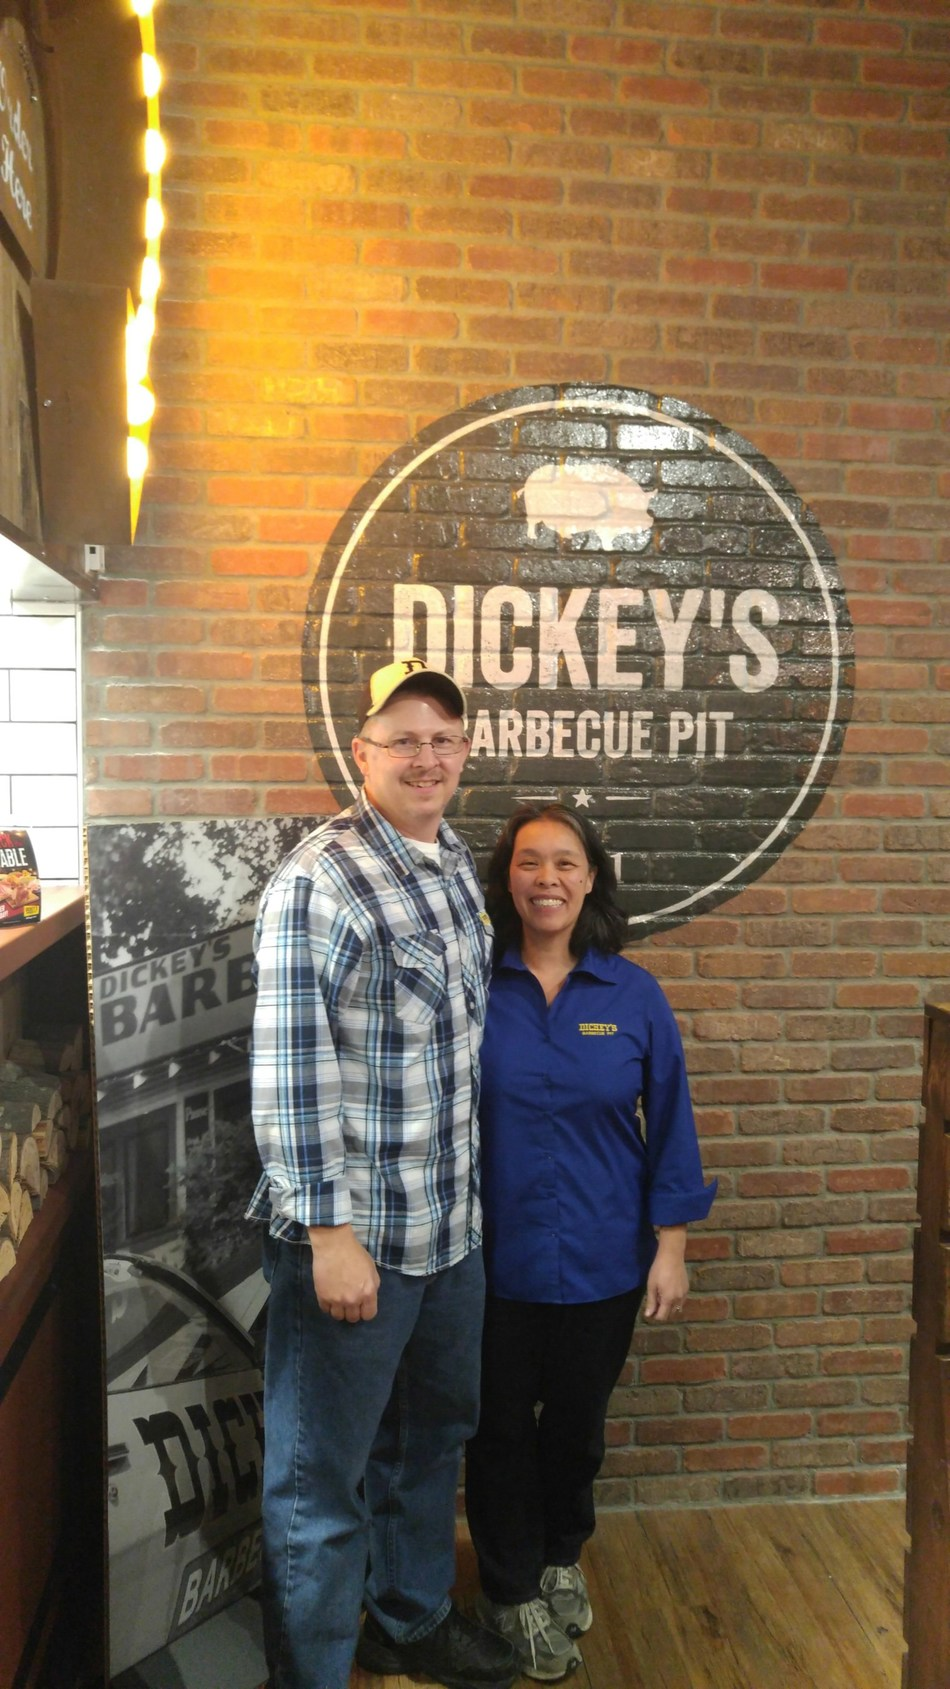 New franchisee Bill DeArmey opens his first Dickey's Barbecue Pit location in Cary, NC.